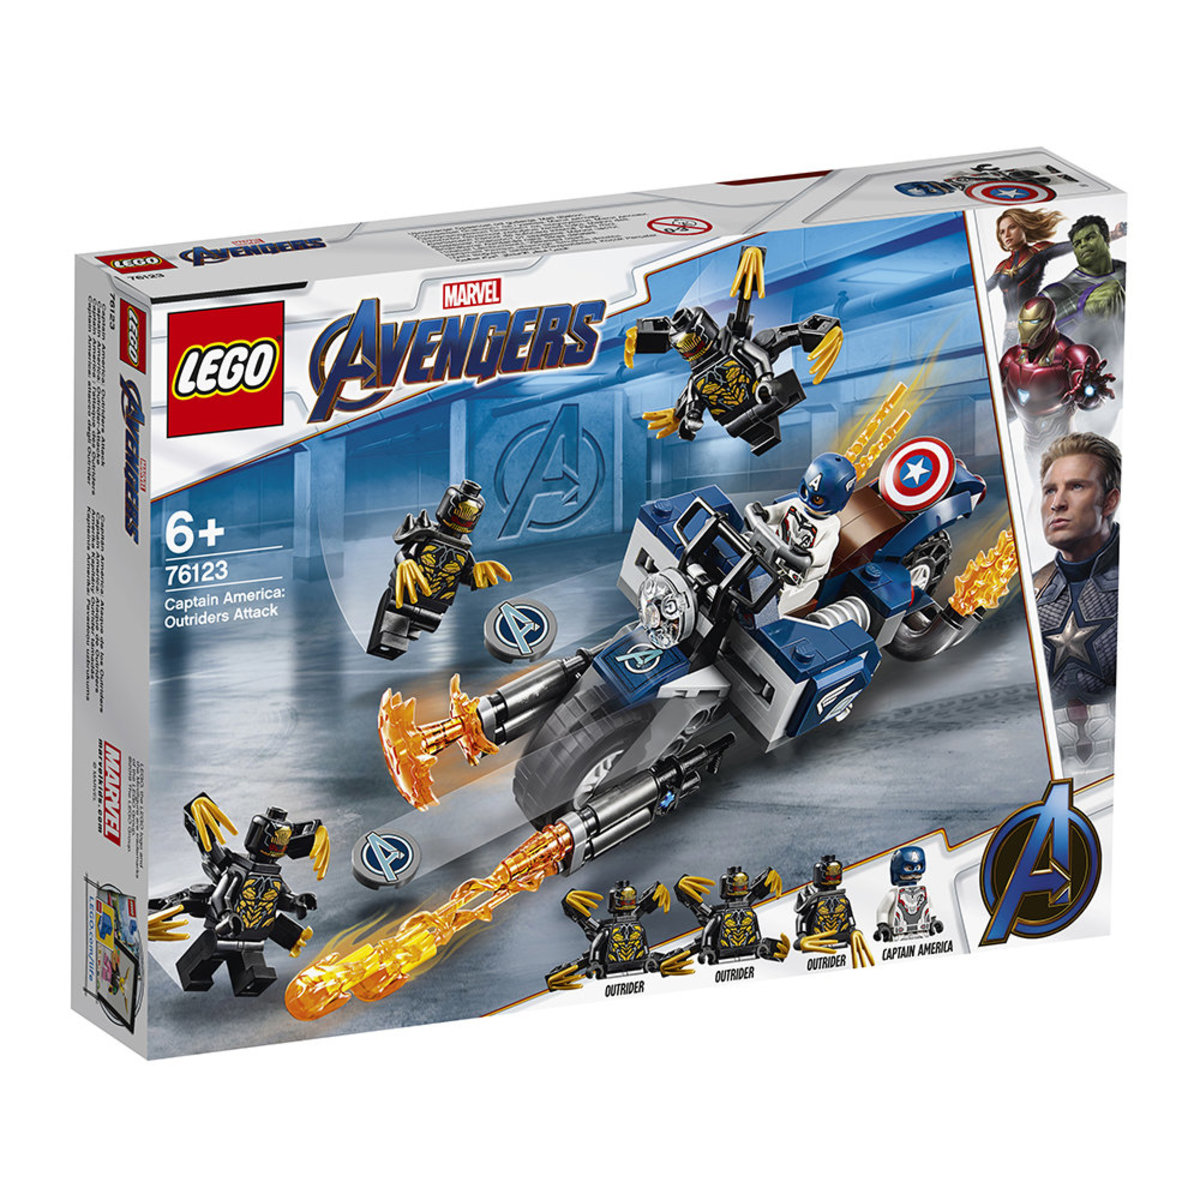 LEGO®Super Heroes 76123 Captain America: Outriders Attack (Marvel, Avengers)